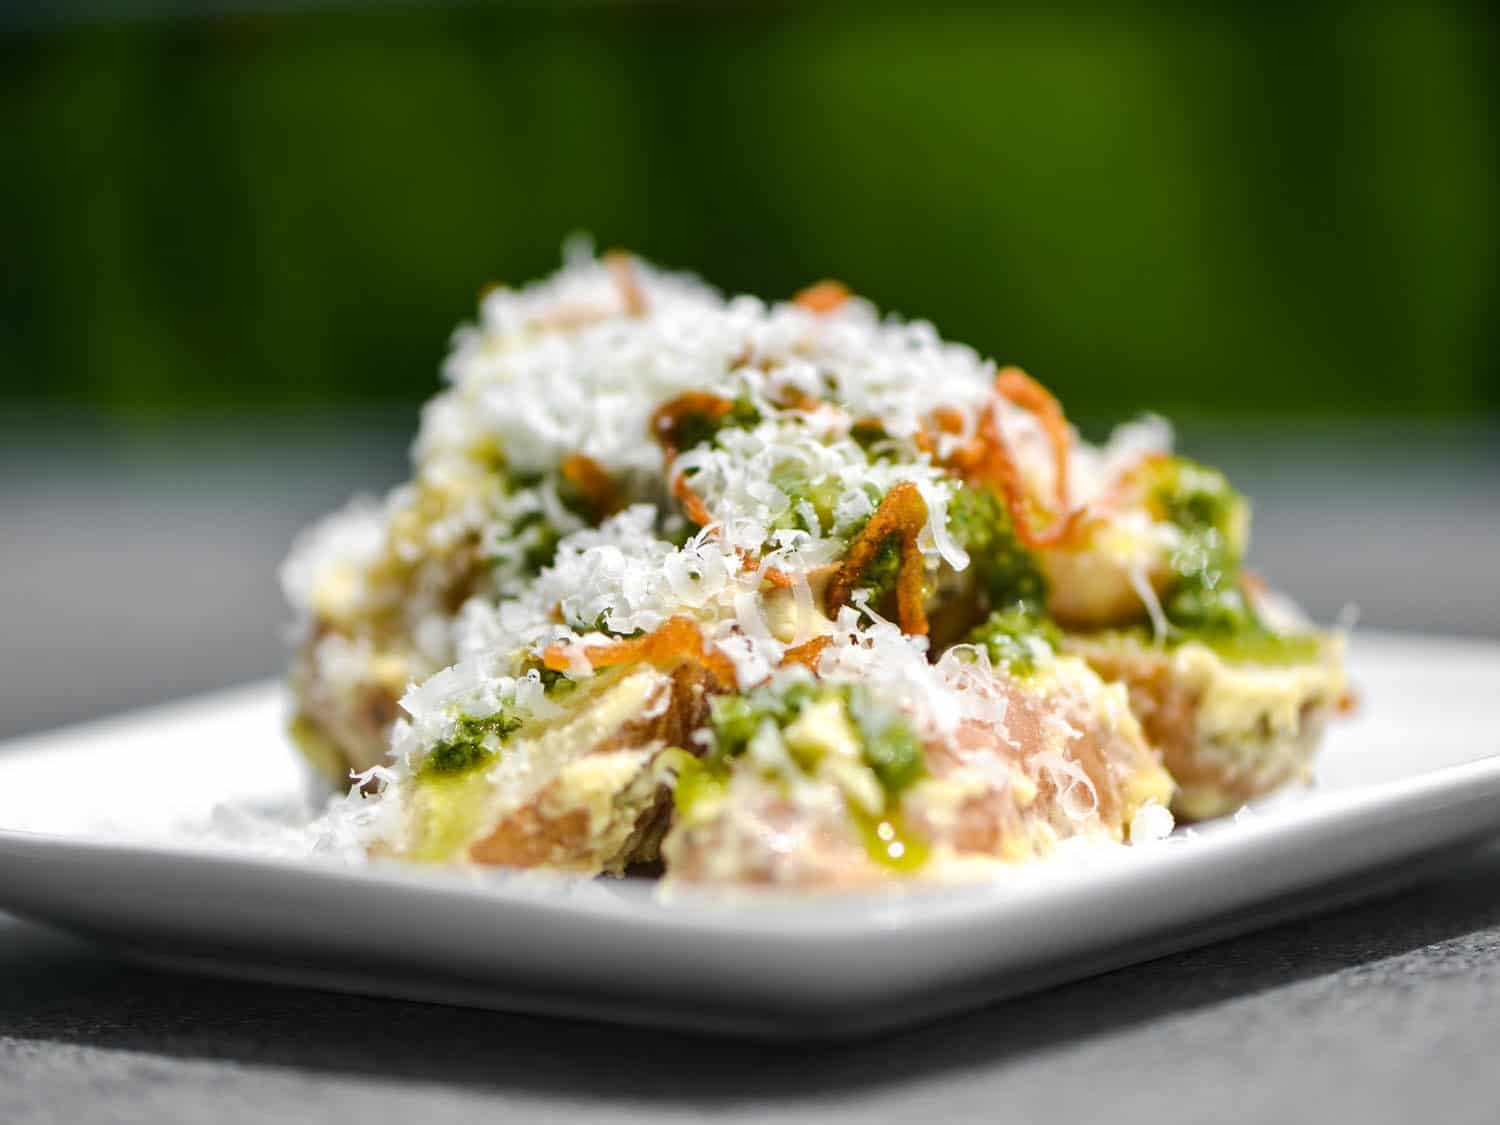 Fingerling potatpo salad with aioli, pesto, fried shallots, and pecorino